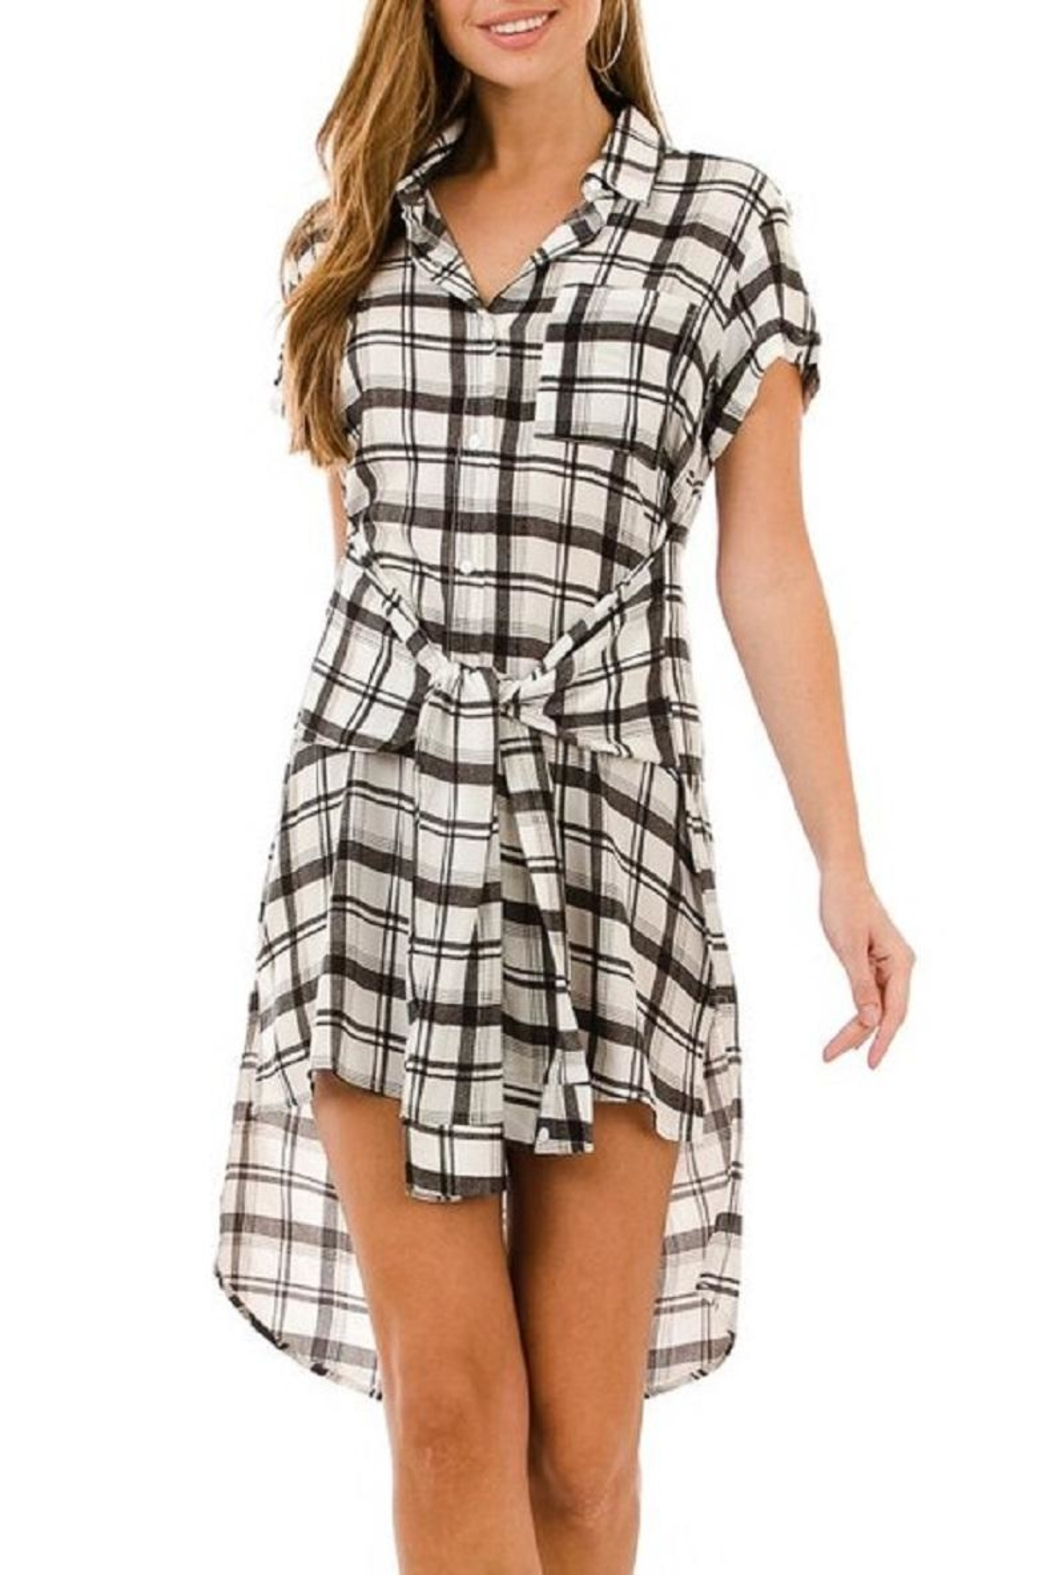 AKAIV Tie-Front Shirt Dress - Front Full Image